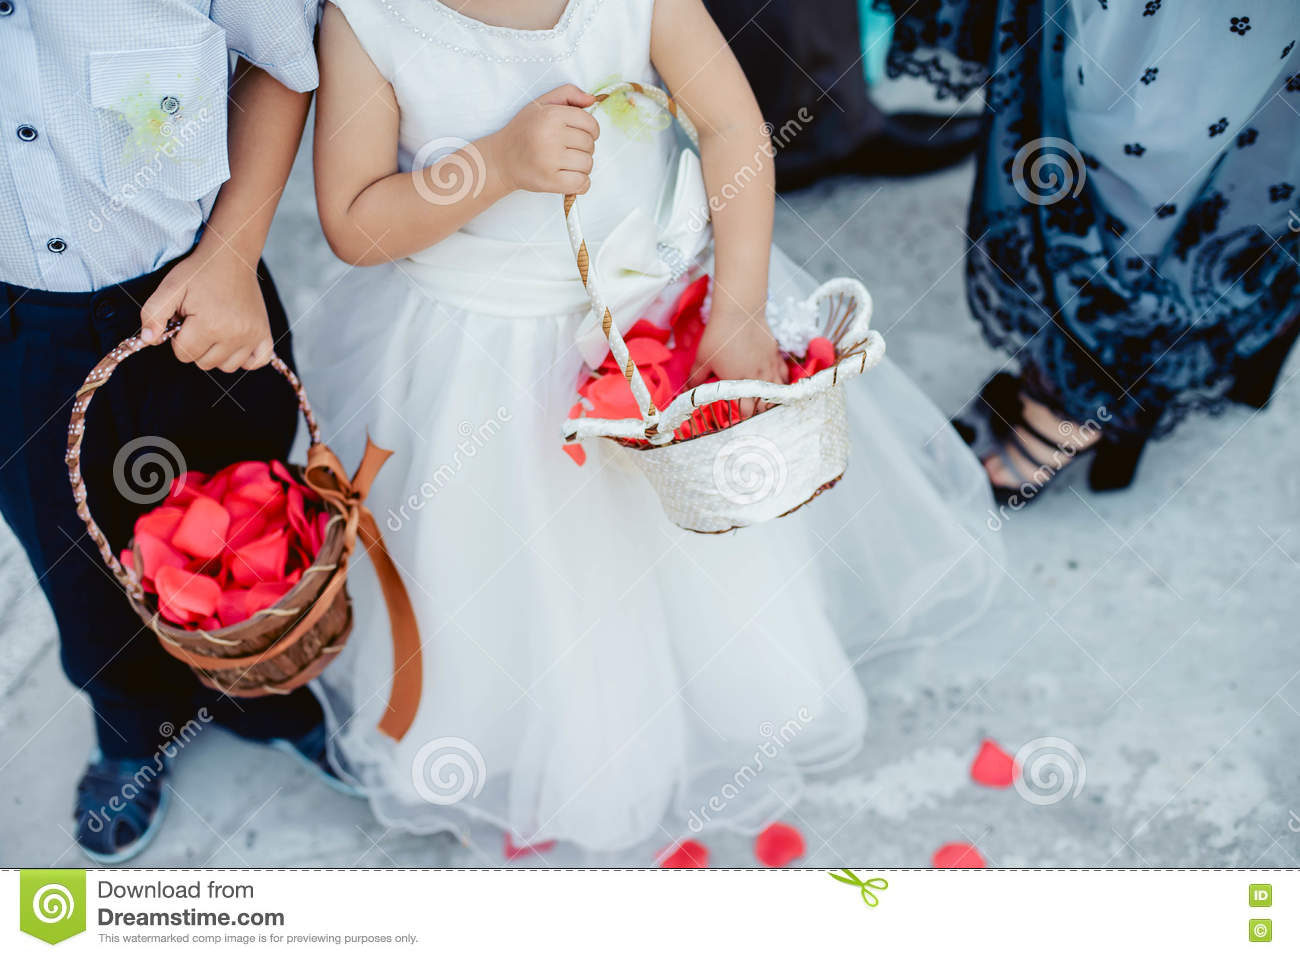 Children With Basket Throwing Rose Petals Stock Image - Image of ...